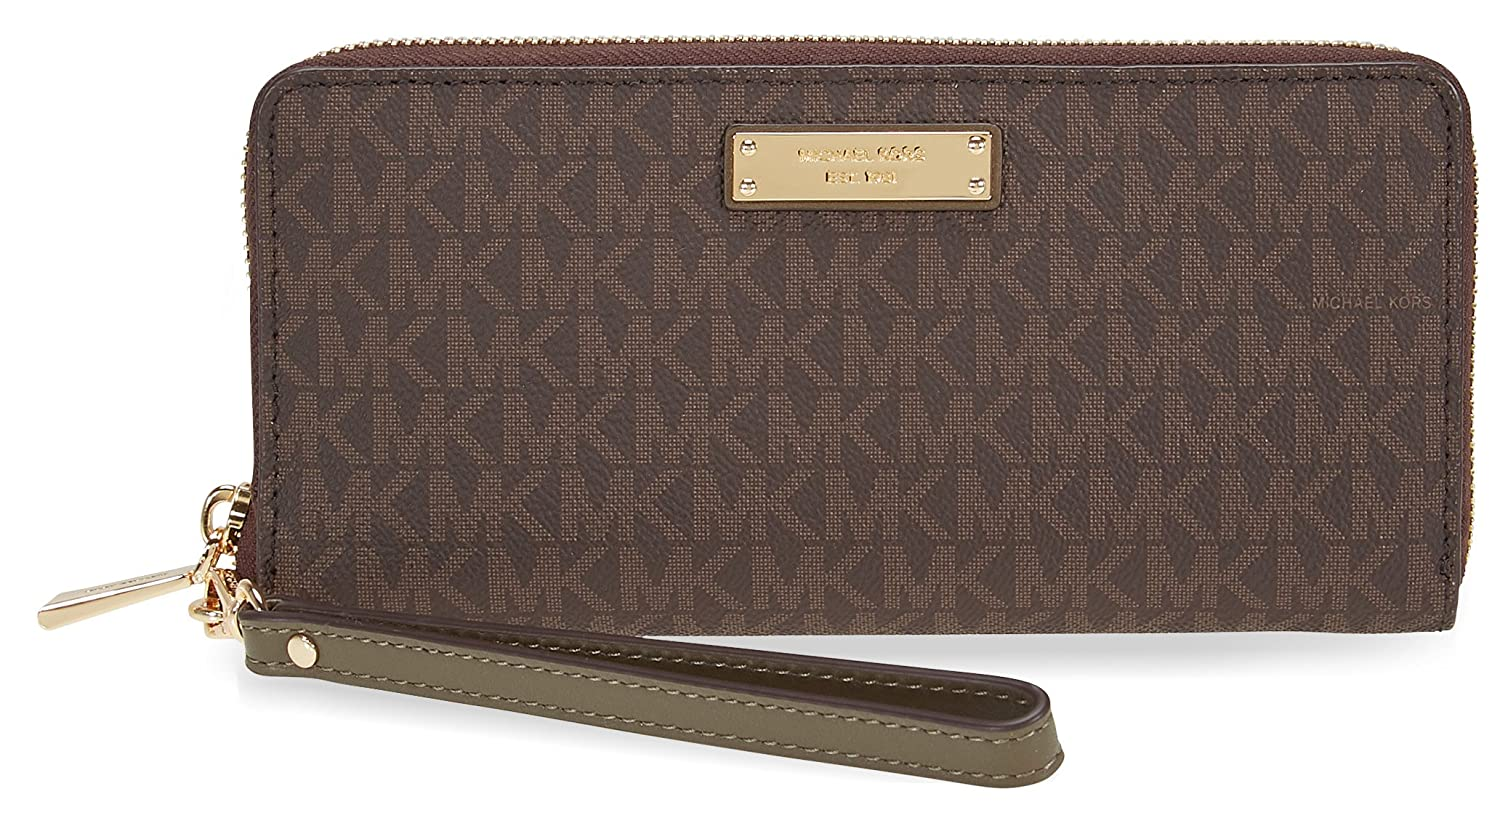 Michael Michael Korsジェットセット旅行ロゴコンチネンタルウォレット B07577P9N2 L|Brown and Olive Brown and Olive L